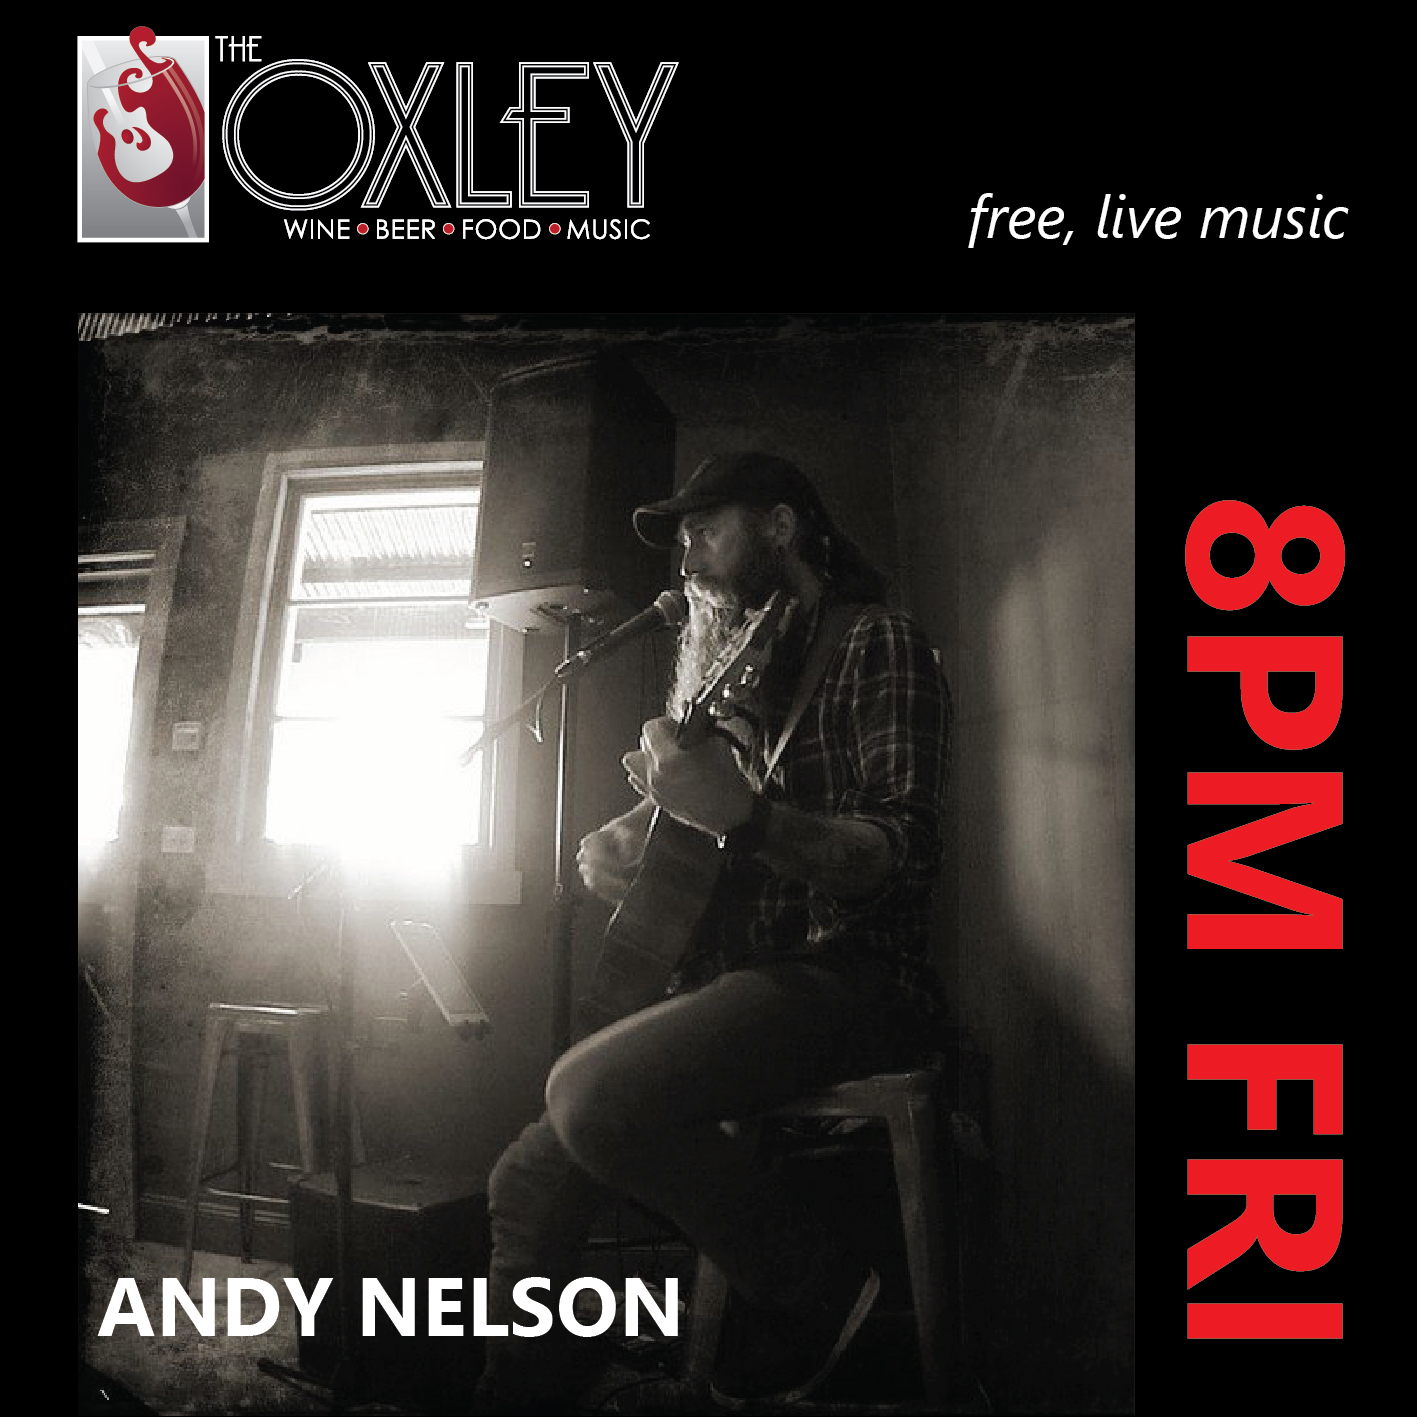 The-Oxley-Wine-Bar-music-promo-Maybury-Ink.jpg